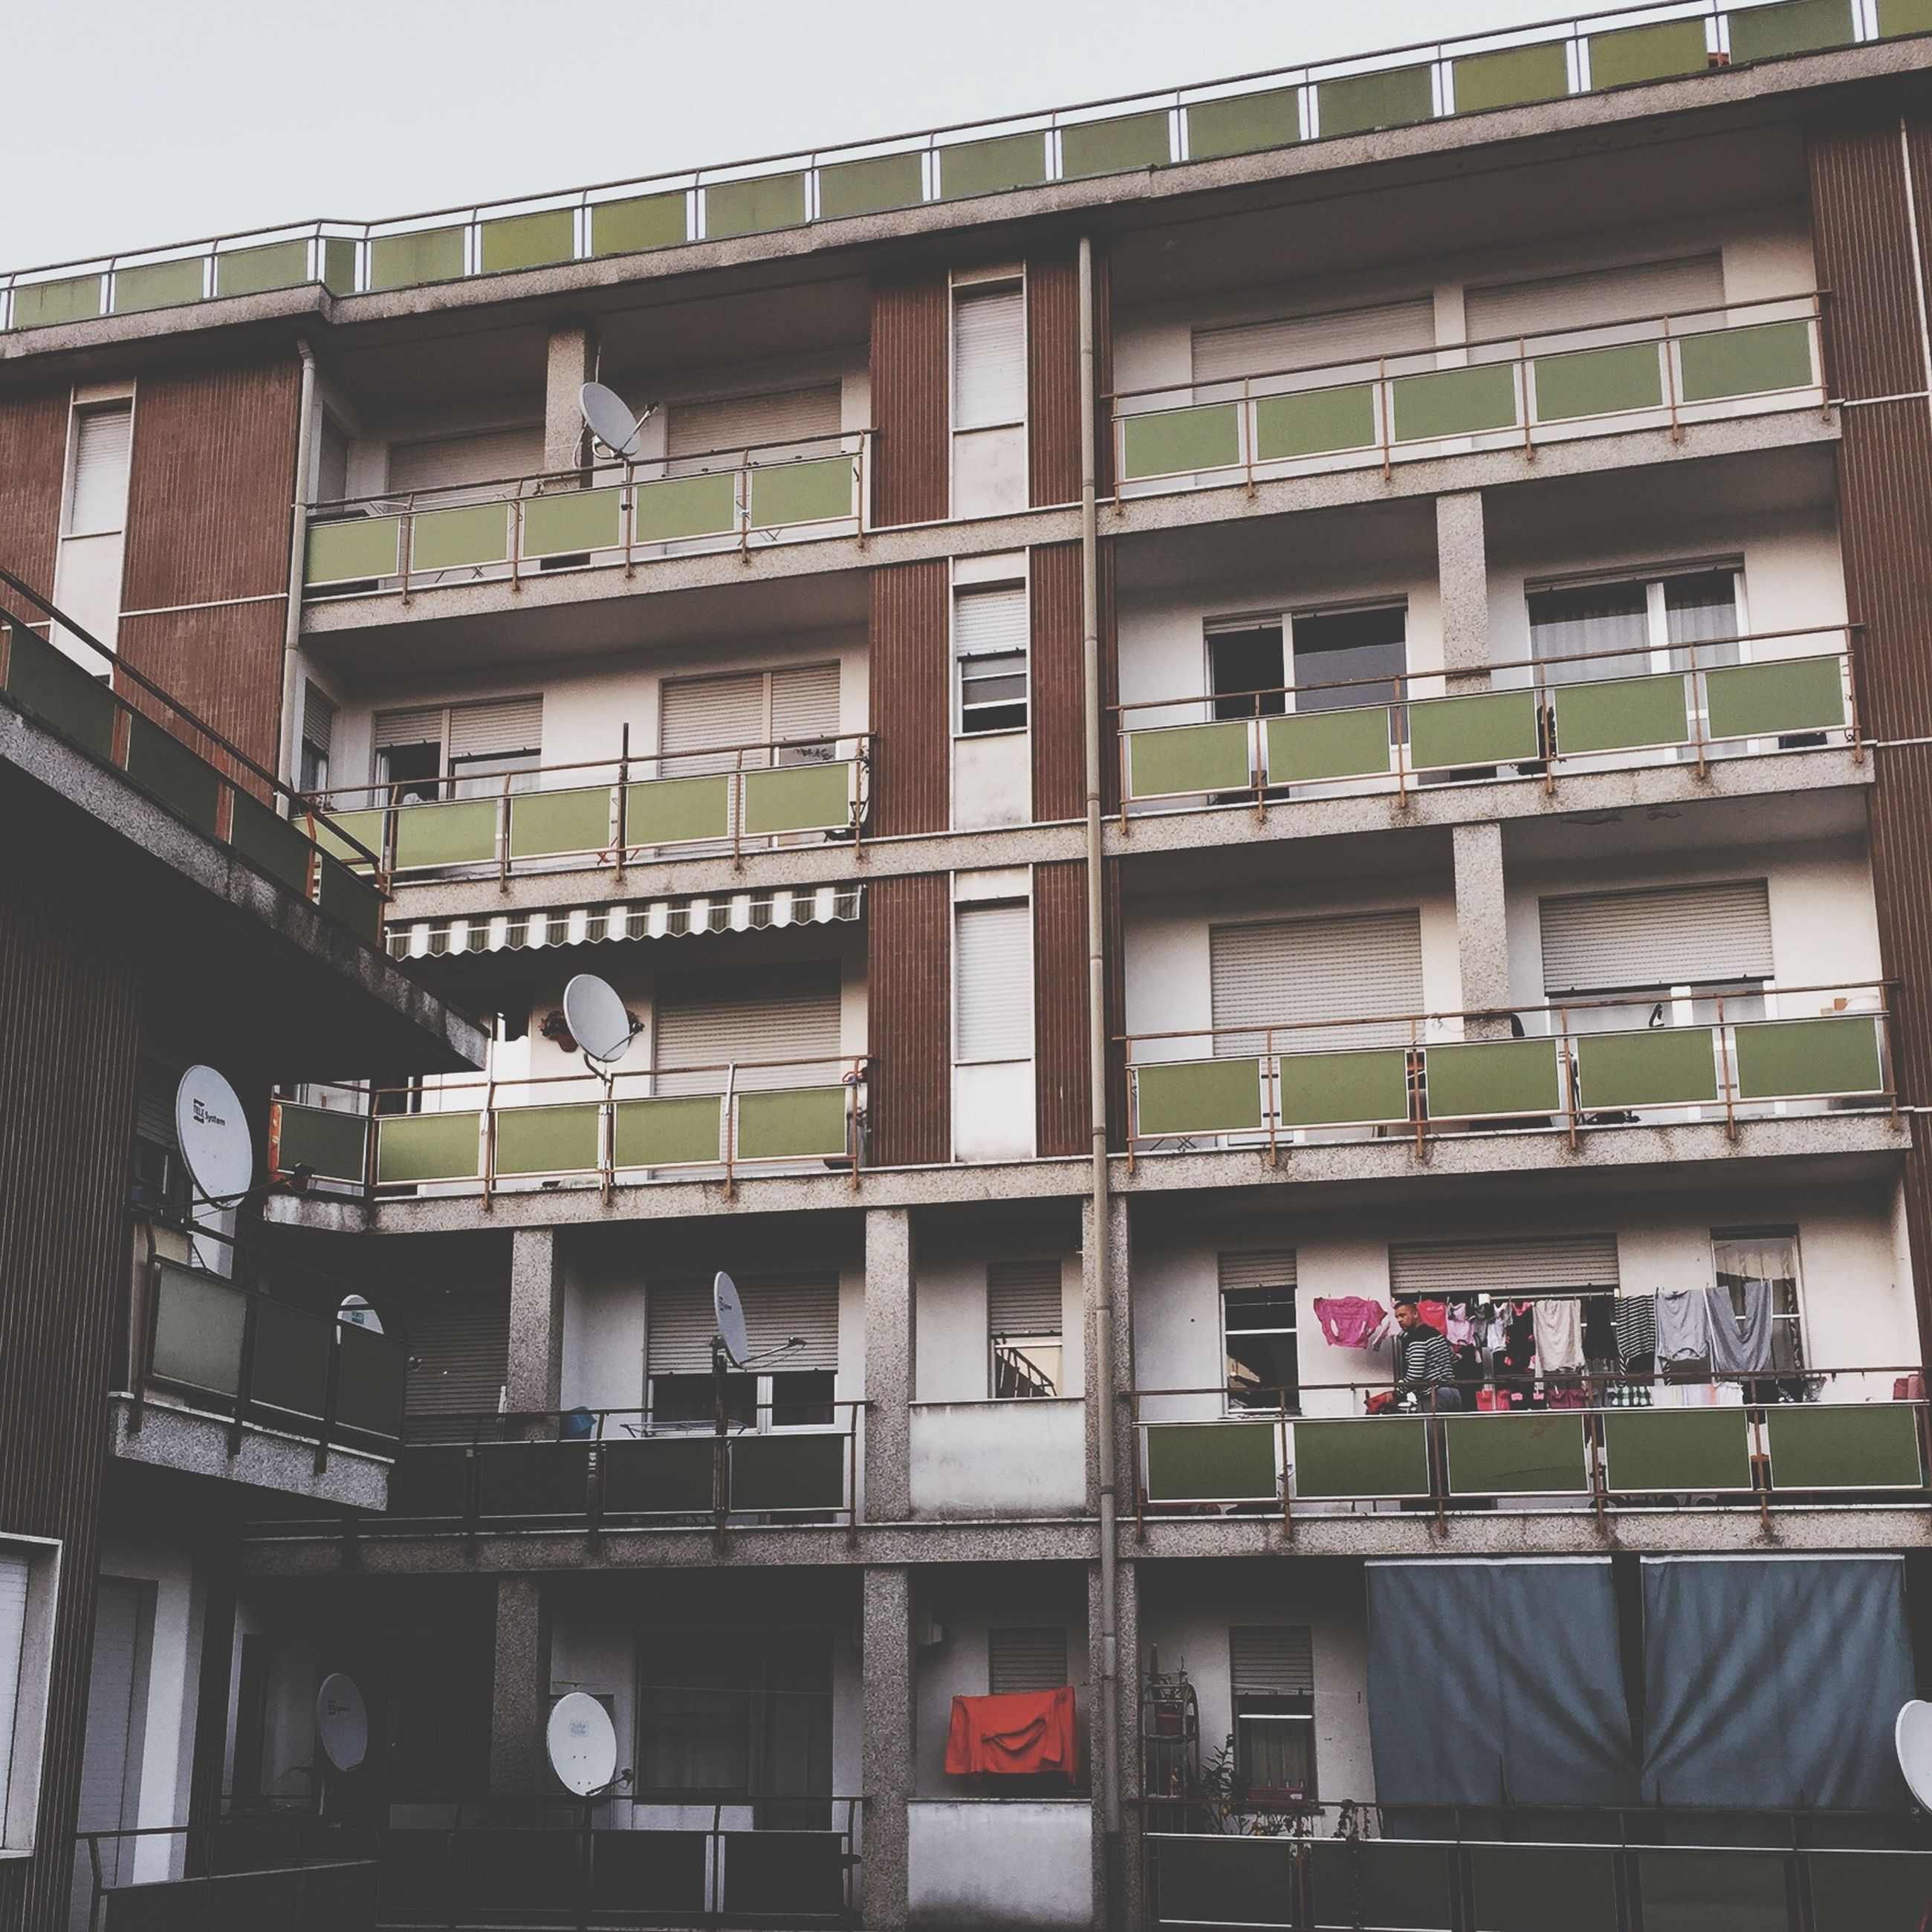 architecture, building exterior, built structure, window, low angle view, building, residential building, balcony, city, glass - material, residential structure, modern, day, apartment, outdoors, office building, no people, in a row, facade, exterior